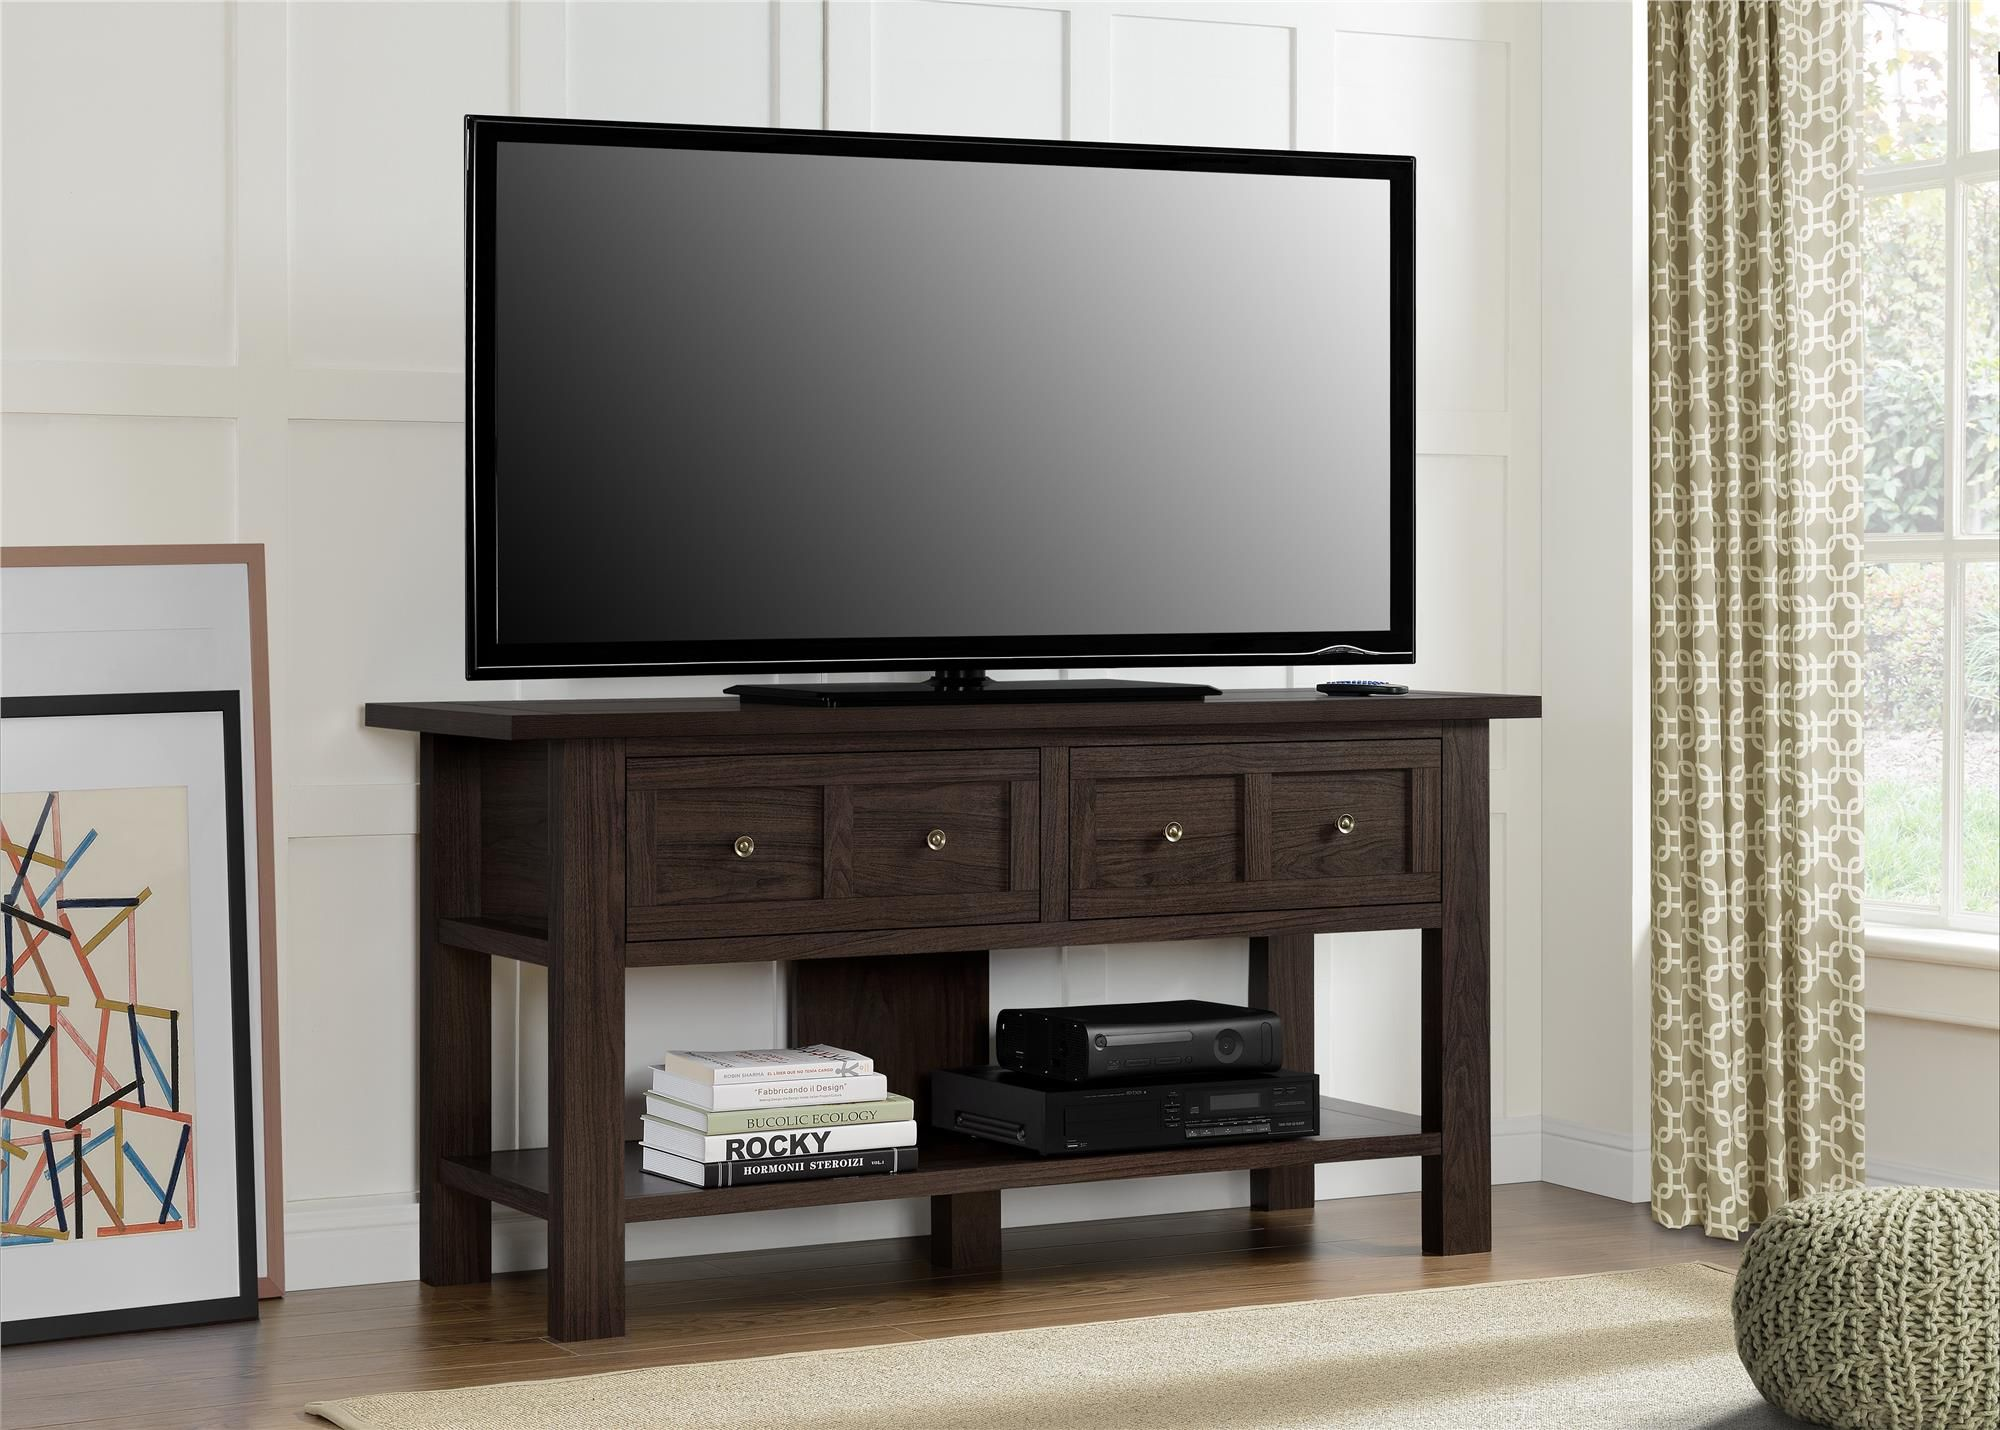 Sears Com Tv Stand Altra Furniture Tv Stand Console Tv table for 55 inch tv